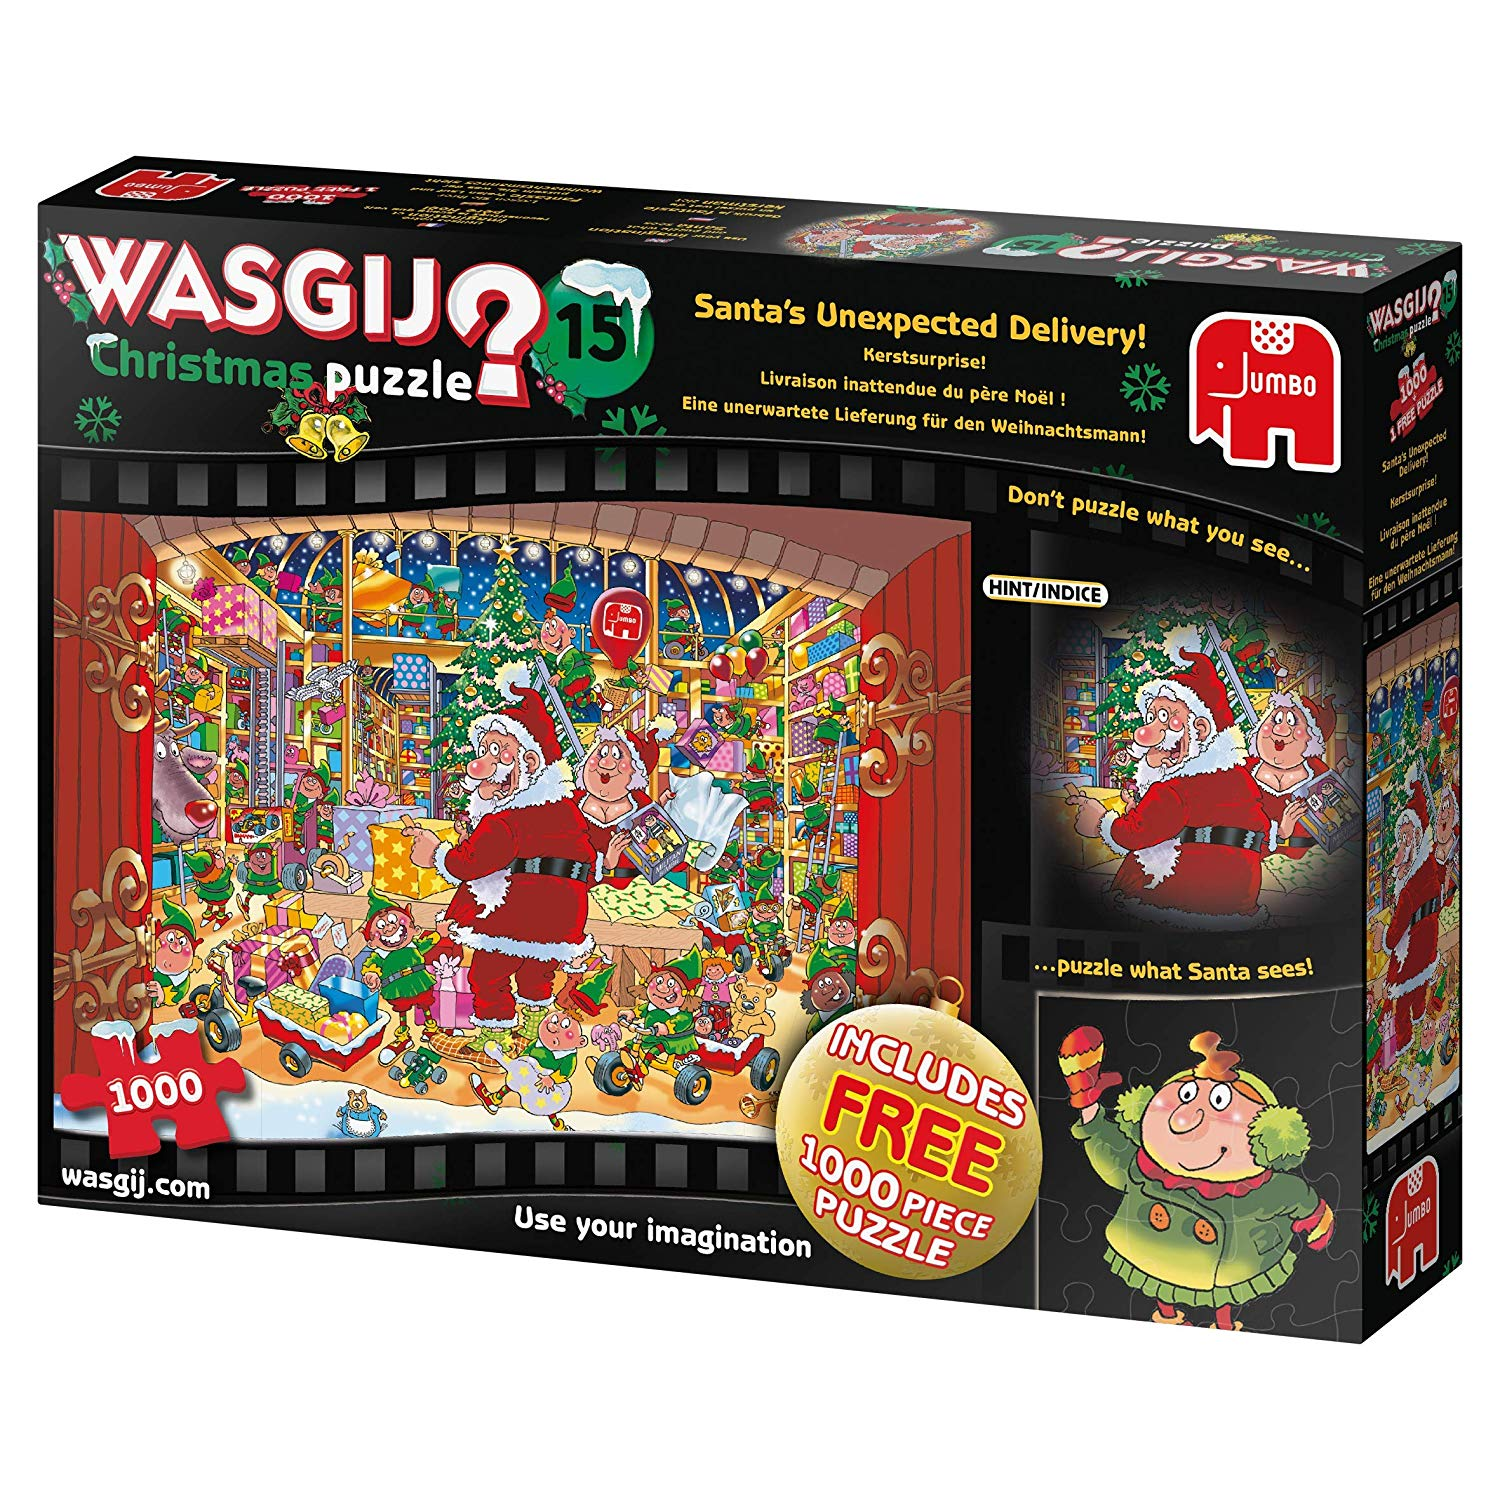 Jumbo 19172 Treat Wasgij Christmas 15-Santa's Unexpected Delivery 2 x 1000 Piece Puzzle, Multi